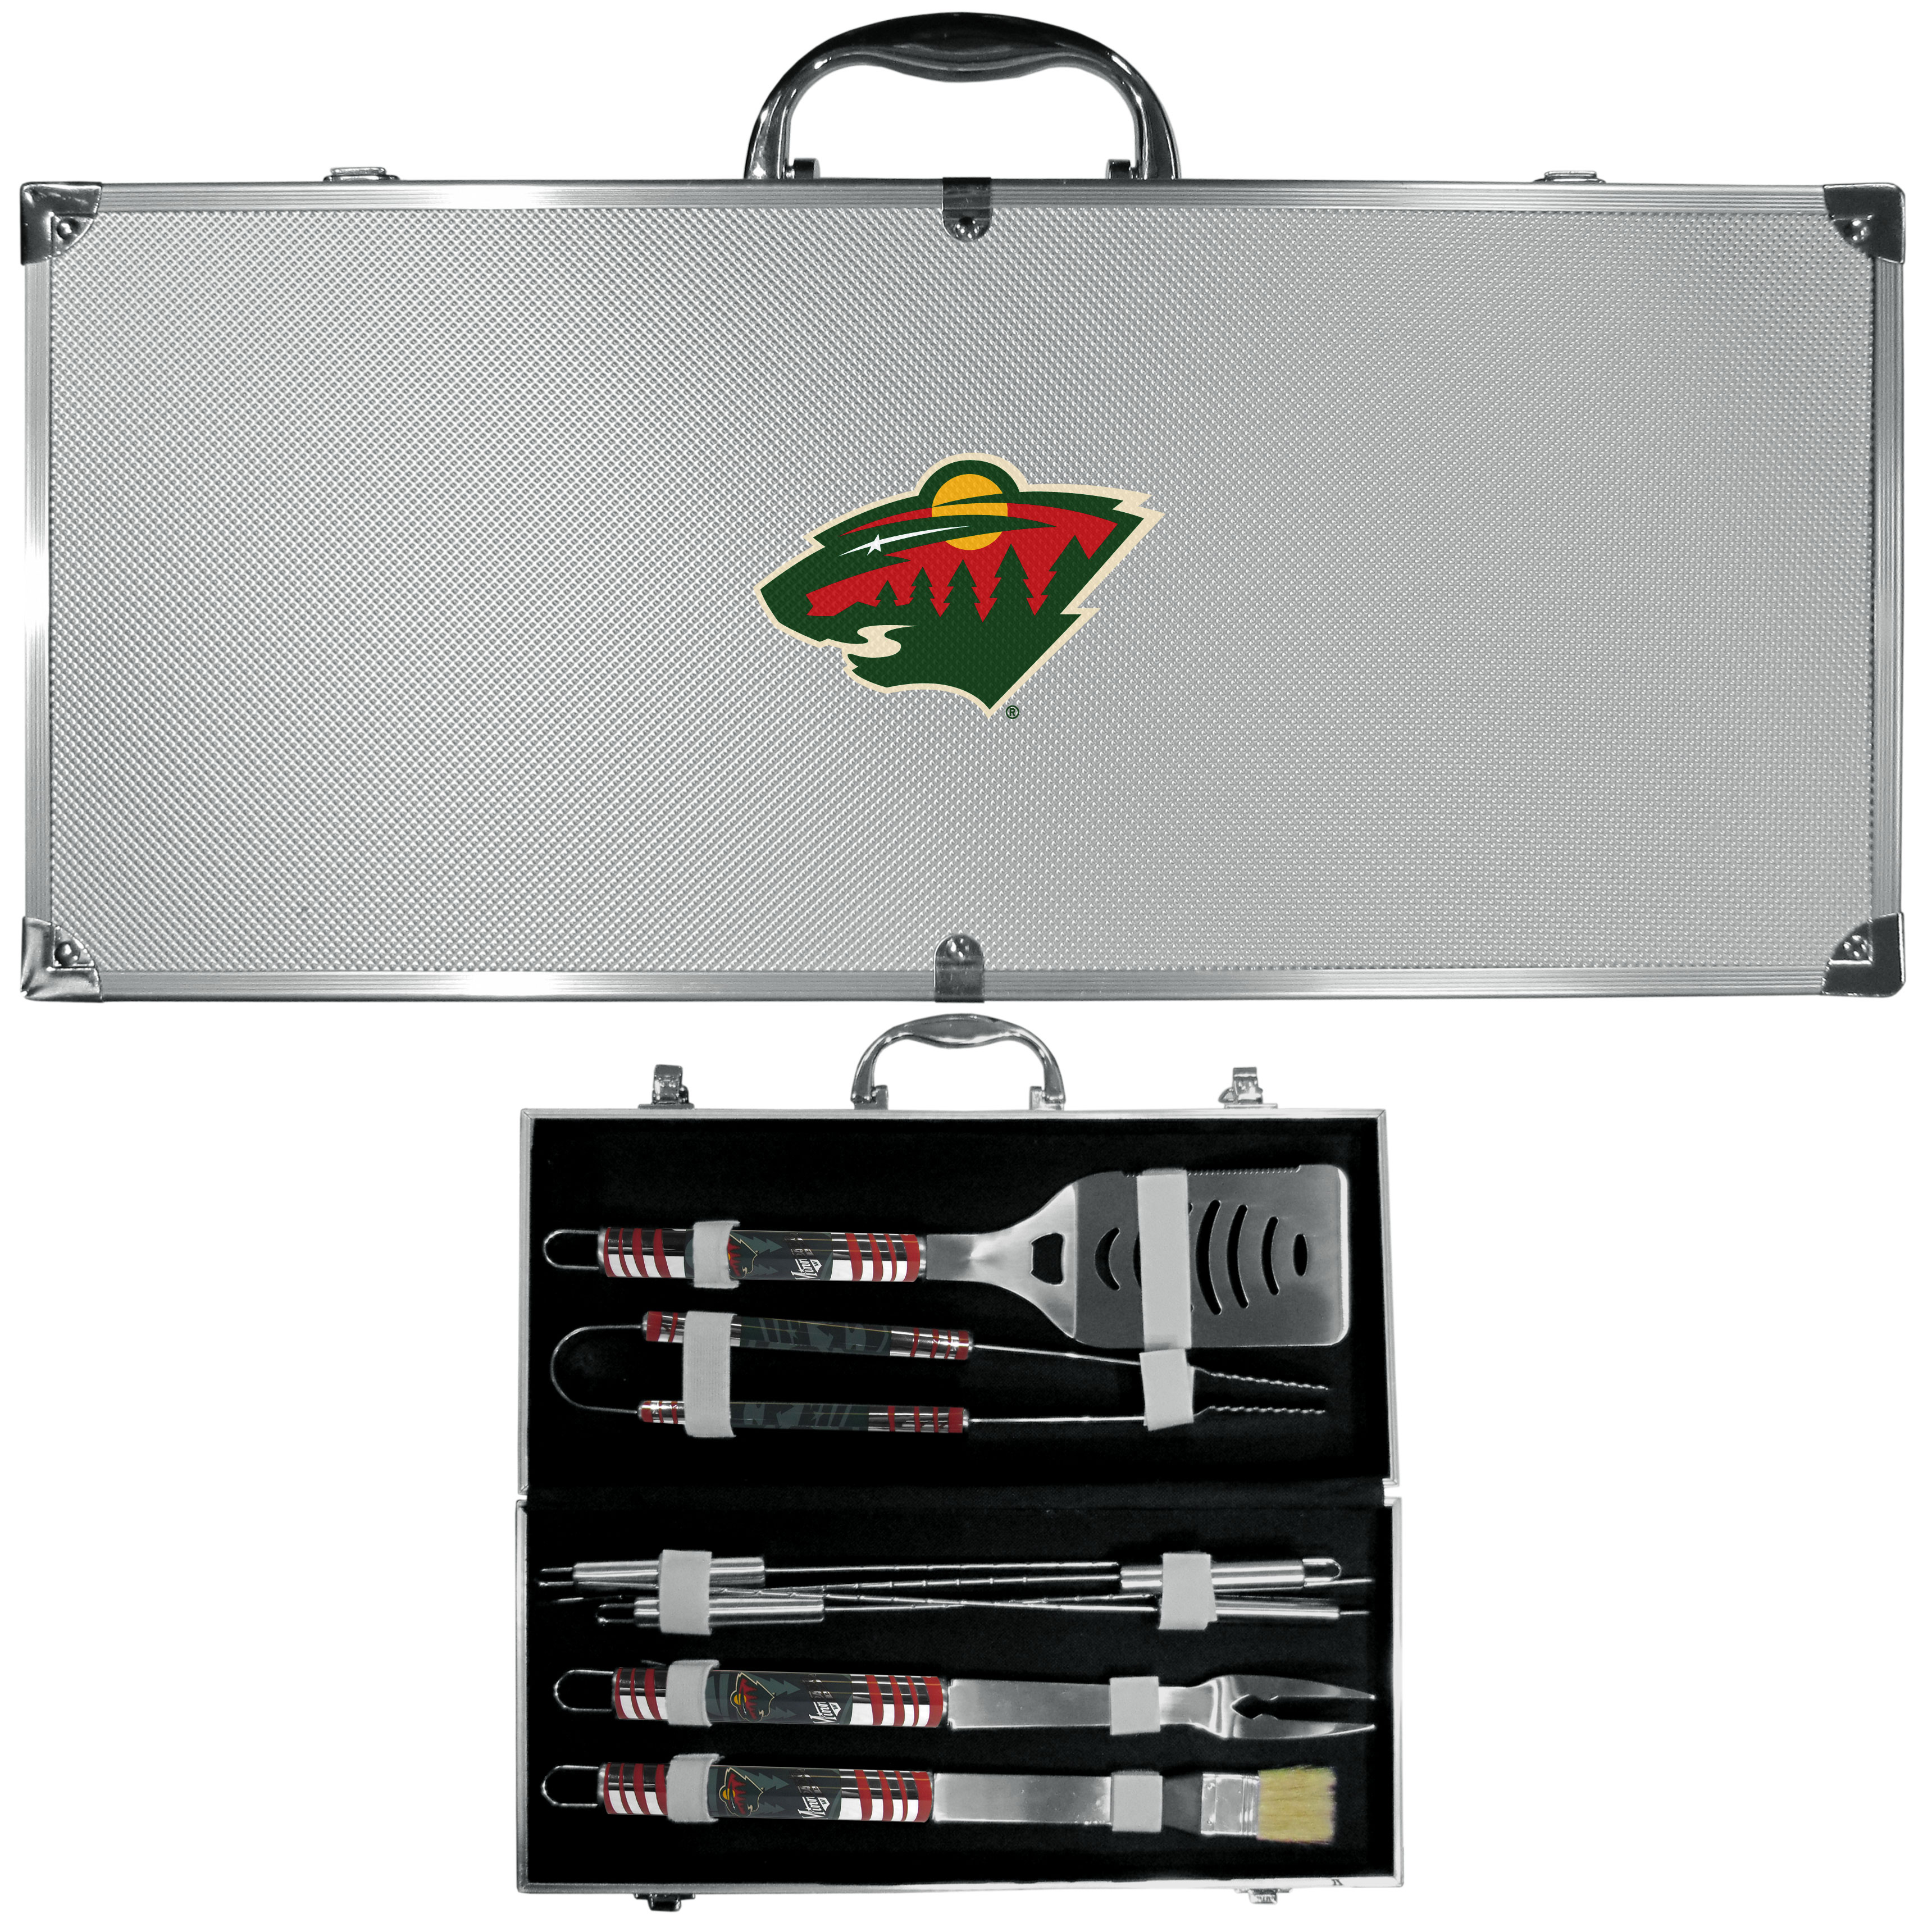 Minnesota Wild® 8 pc Tailgater BBQ Set - This is the ultimate Minnesota Wild® tailgate accessory! The high quality, 420 grade stainless steel tools are durable and well-made enough to make even the pickiest grill master smile. This complete grill accessory kit includes; 4 skewers, spatula with bottle opener and serrated knife edge, basting brush, tongs and a fork. The 18 inch metal carrying case is perfect for great outdoor use making grilling an ease while camping, tailgating or while having a game day party on your patio. The tools are 17 inches long and feature vivid team graphics. The metal case features a large team emblem with exceptional detail. This high-end men's gift is sure to be a hit as a present on Father's Day or Christmas.